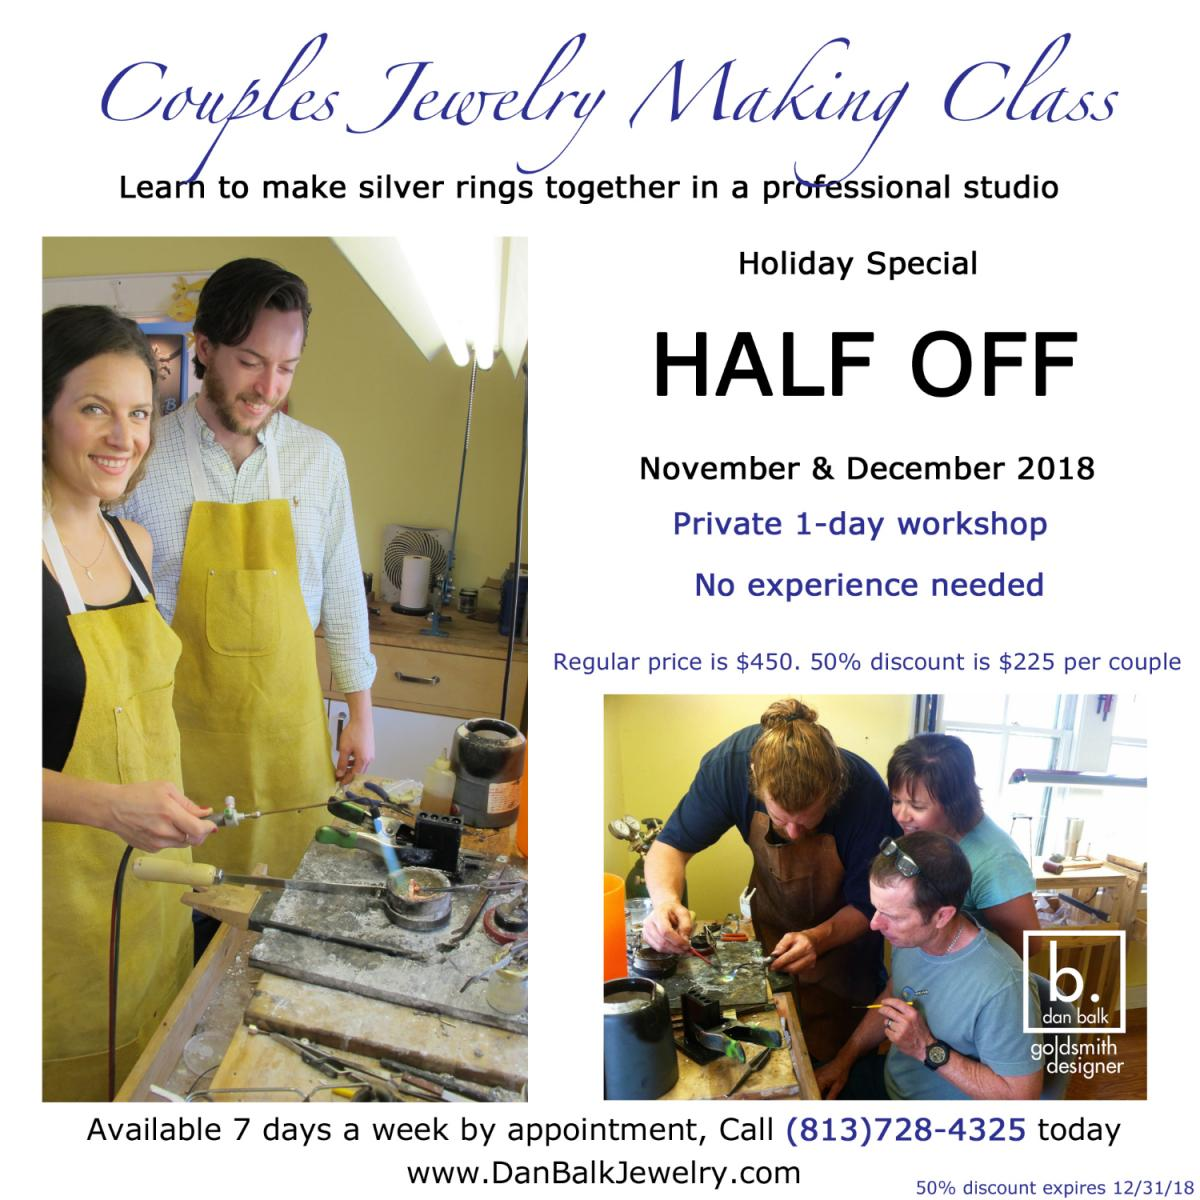 Couples Private Jewelry Class 50% Off Holiday Special, Hand make silver rings together in a professional studio